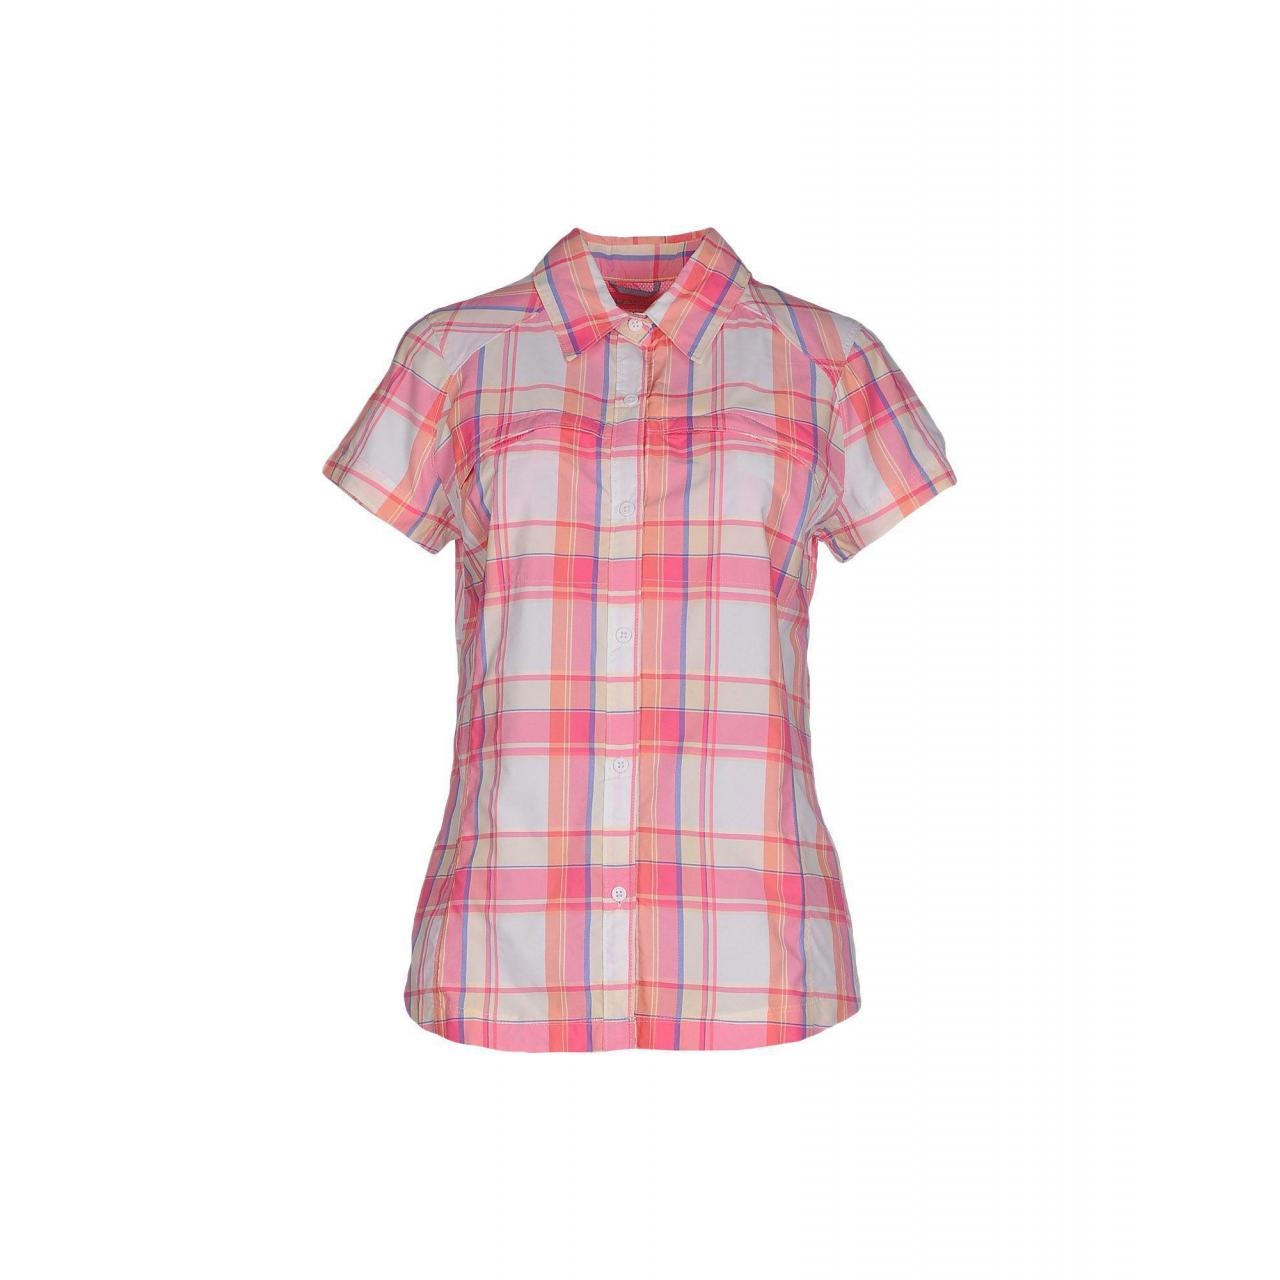 COLUMBIA women Shirts Shirt Pink,columbia apparel online sale,In Stock